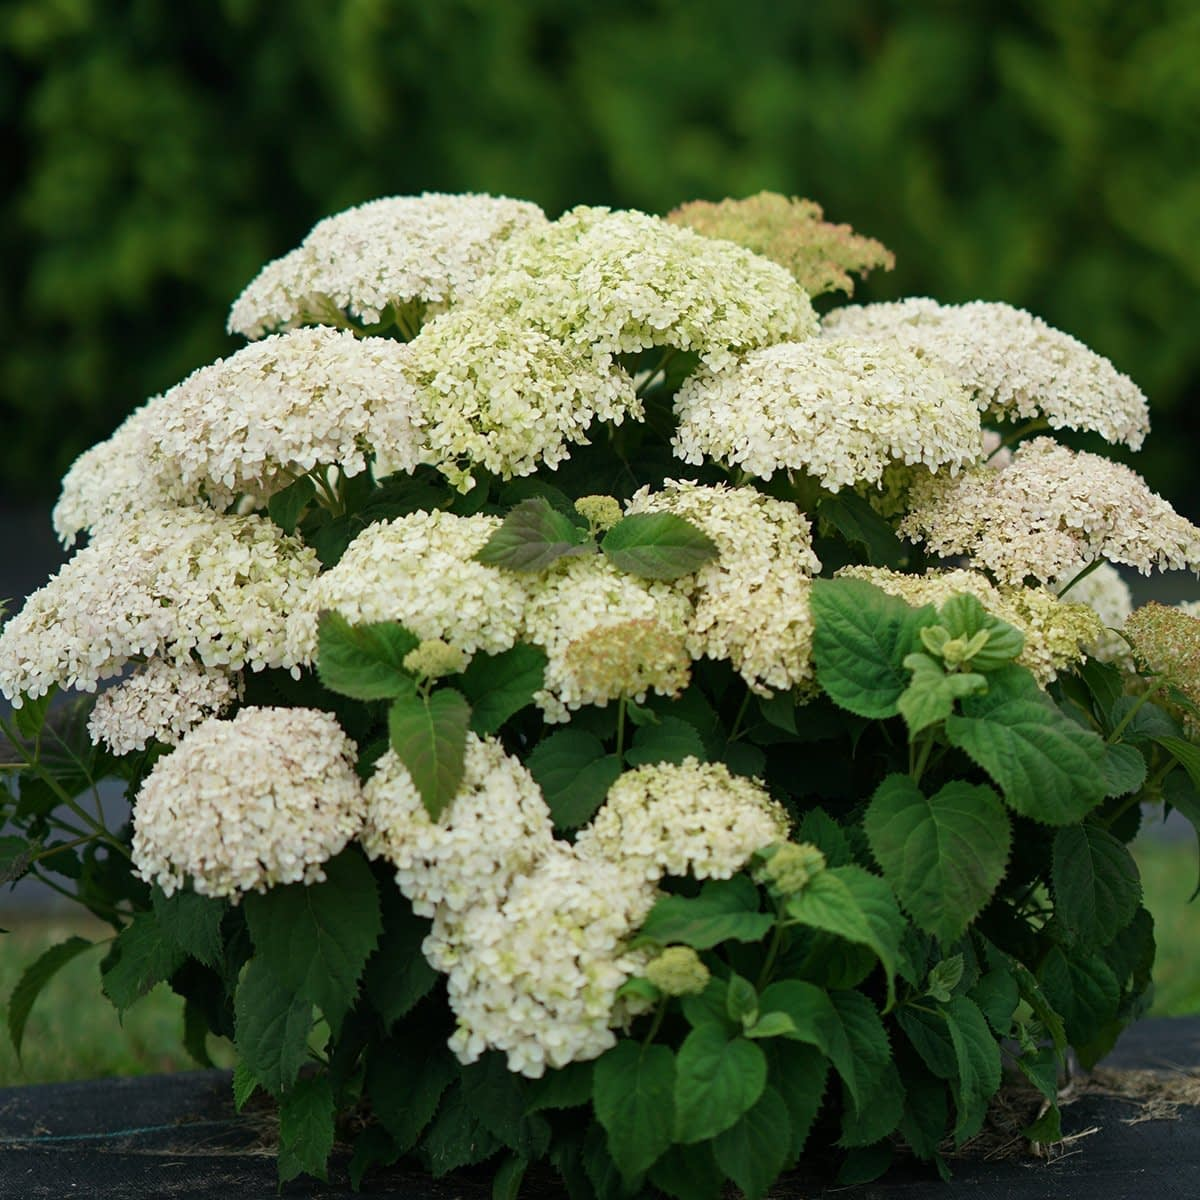 lime and white hydrangea shrub with dark green background